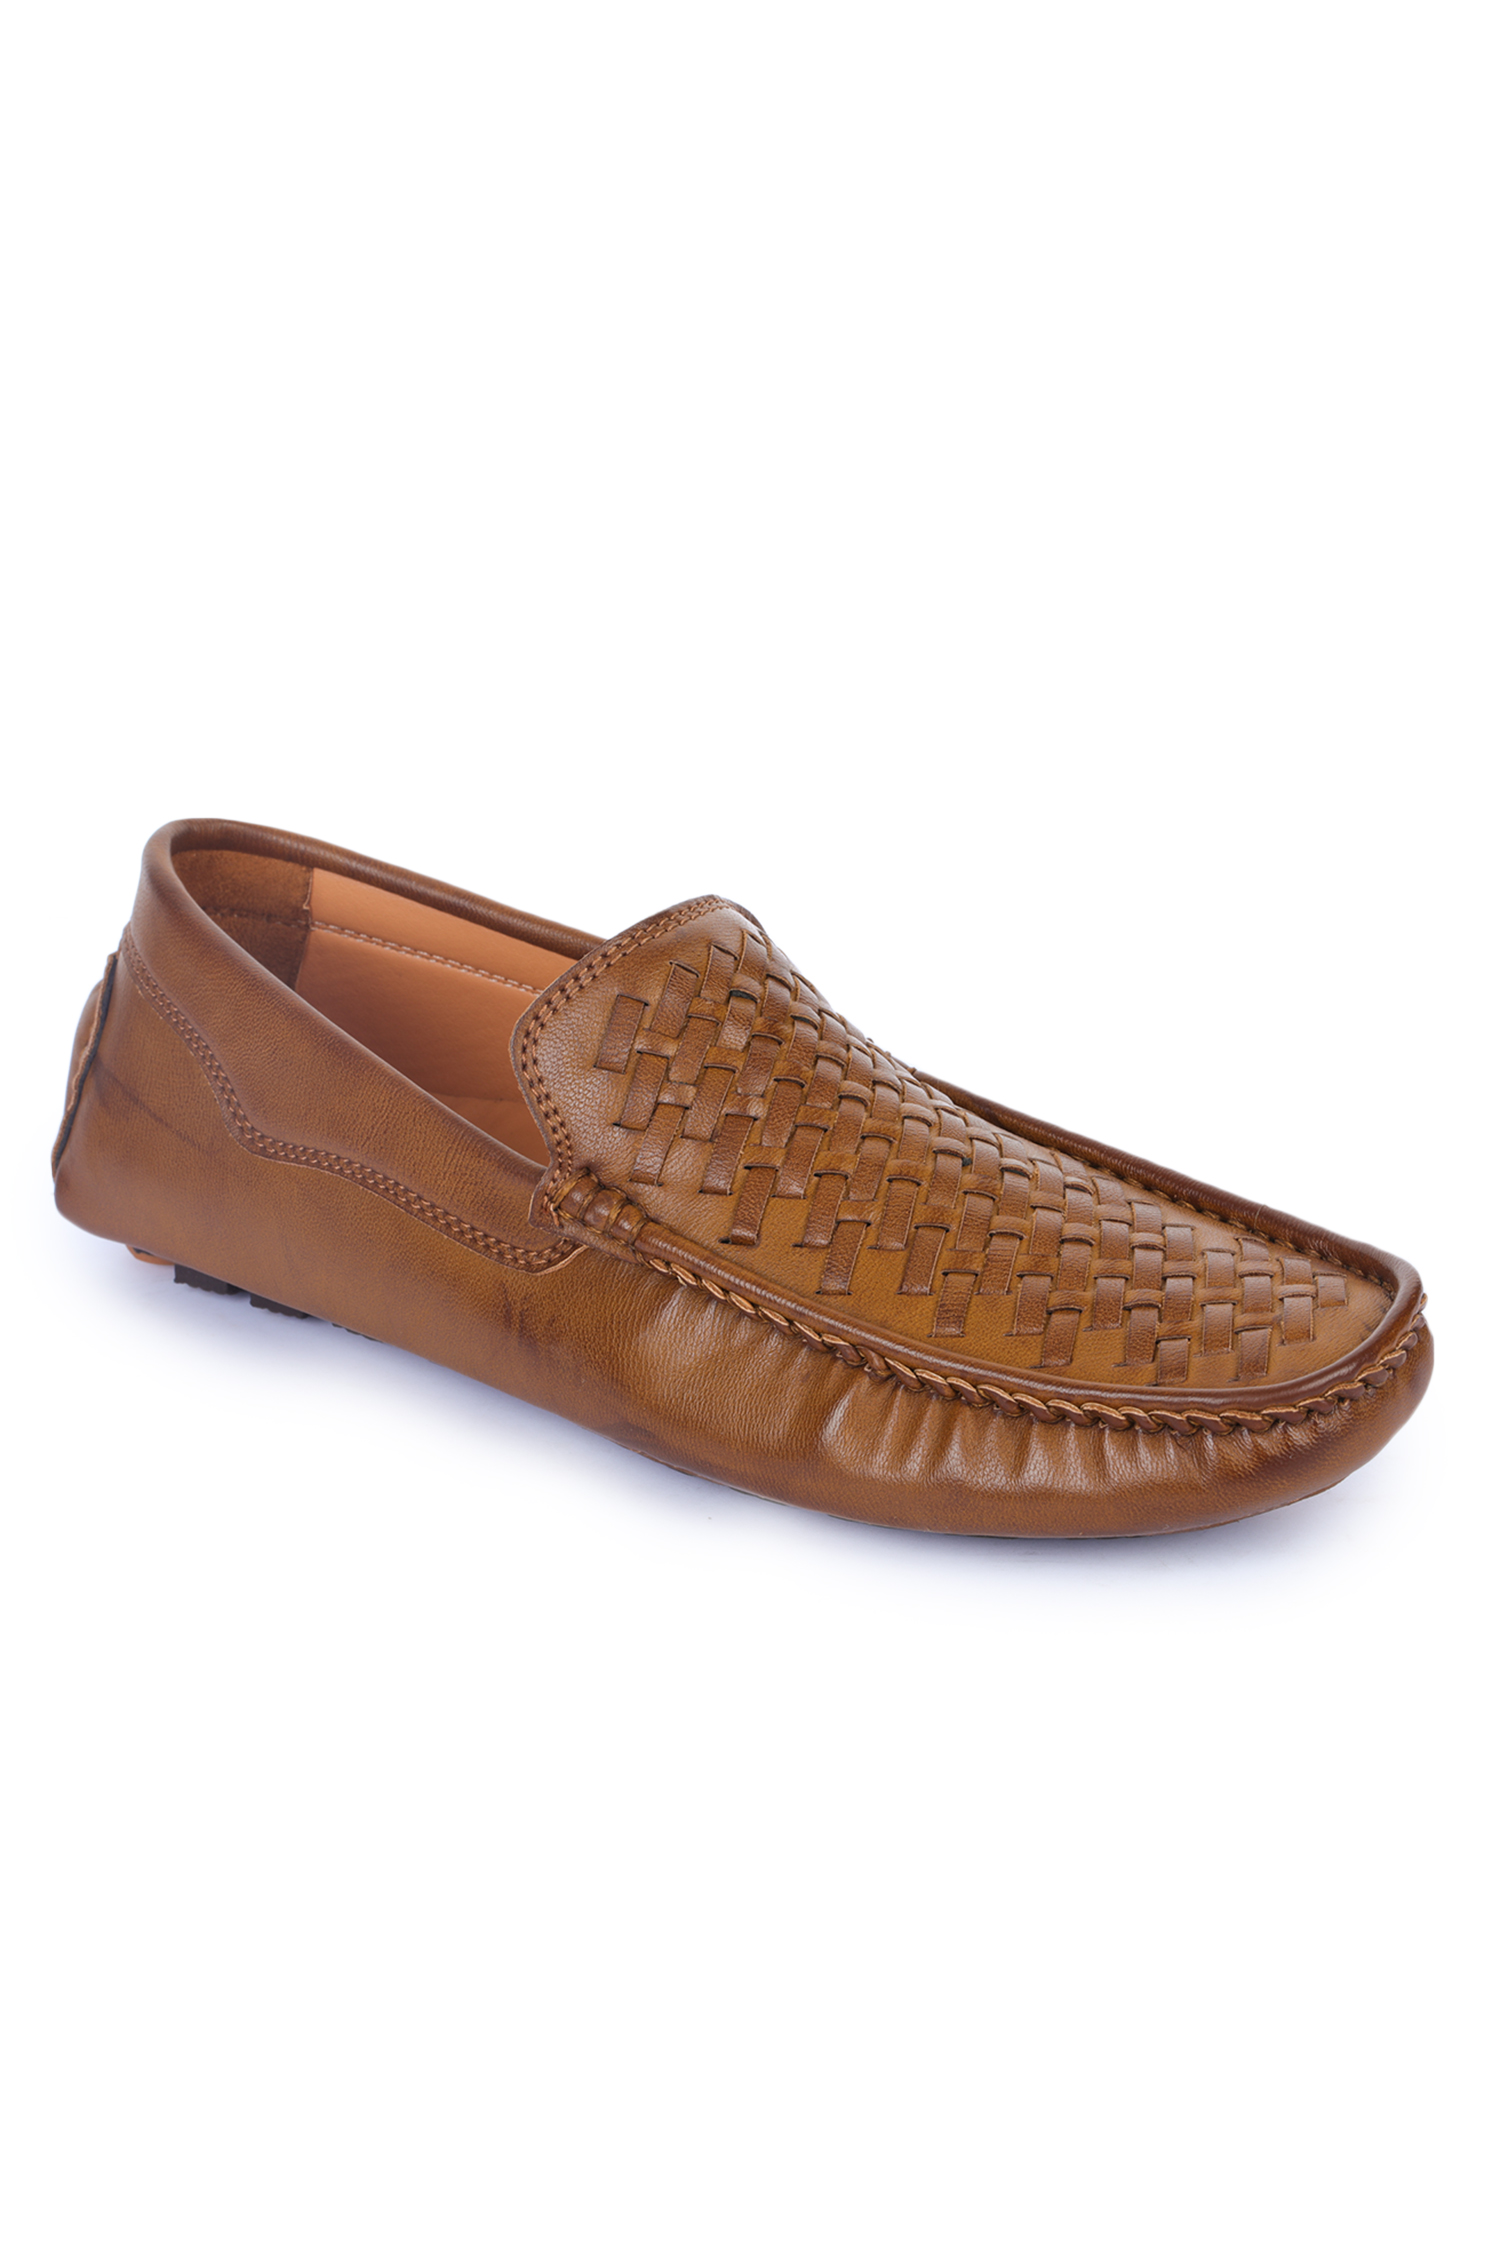 Liberty | Liberty Fortune Brown Formal Oxfords Shoes A17-07_Brown For - Men